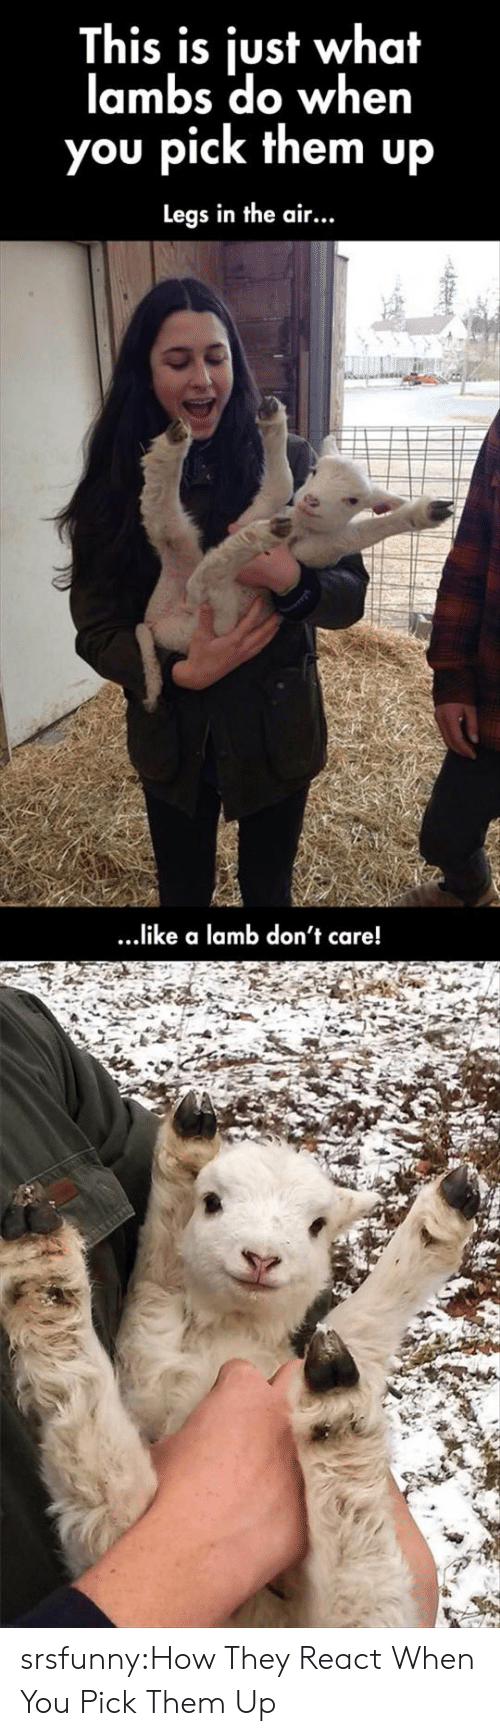 lamb: This is just what  lambs do when  you pick them up  Legs in the air...  ...ike a lamb don't care! srsfunny:How They React When You Pick Them Up